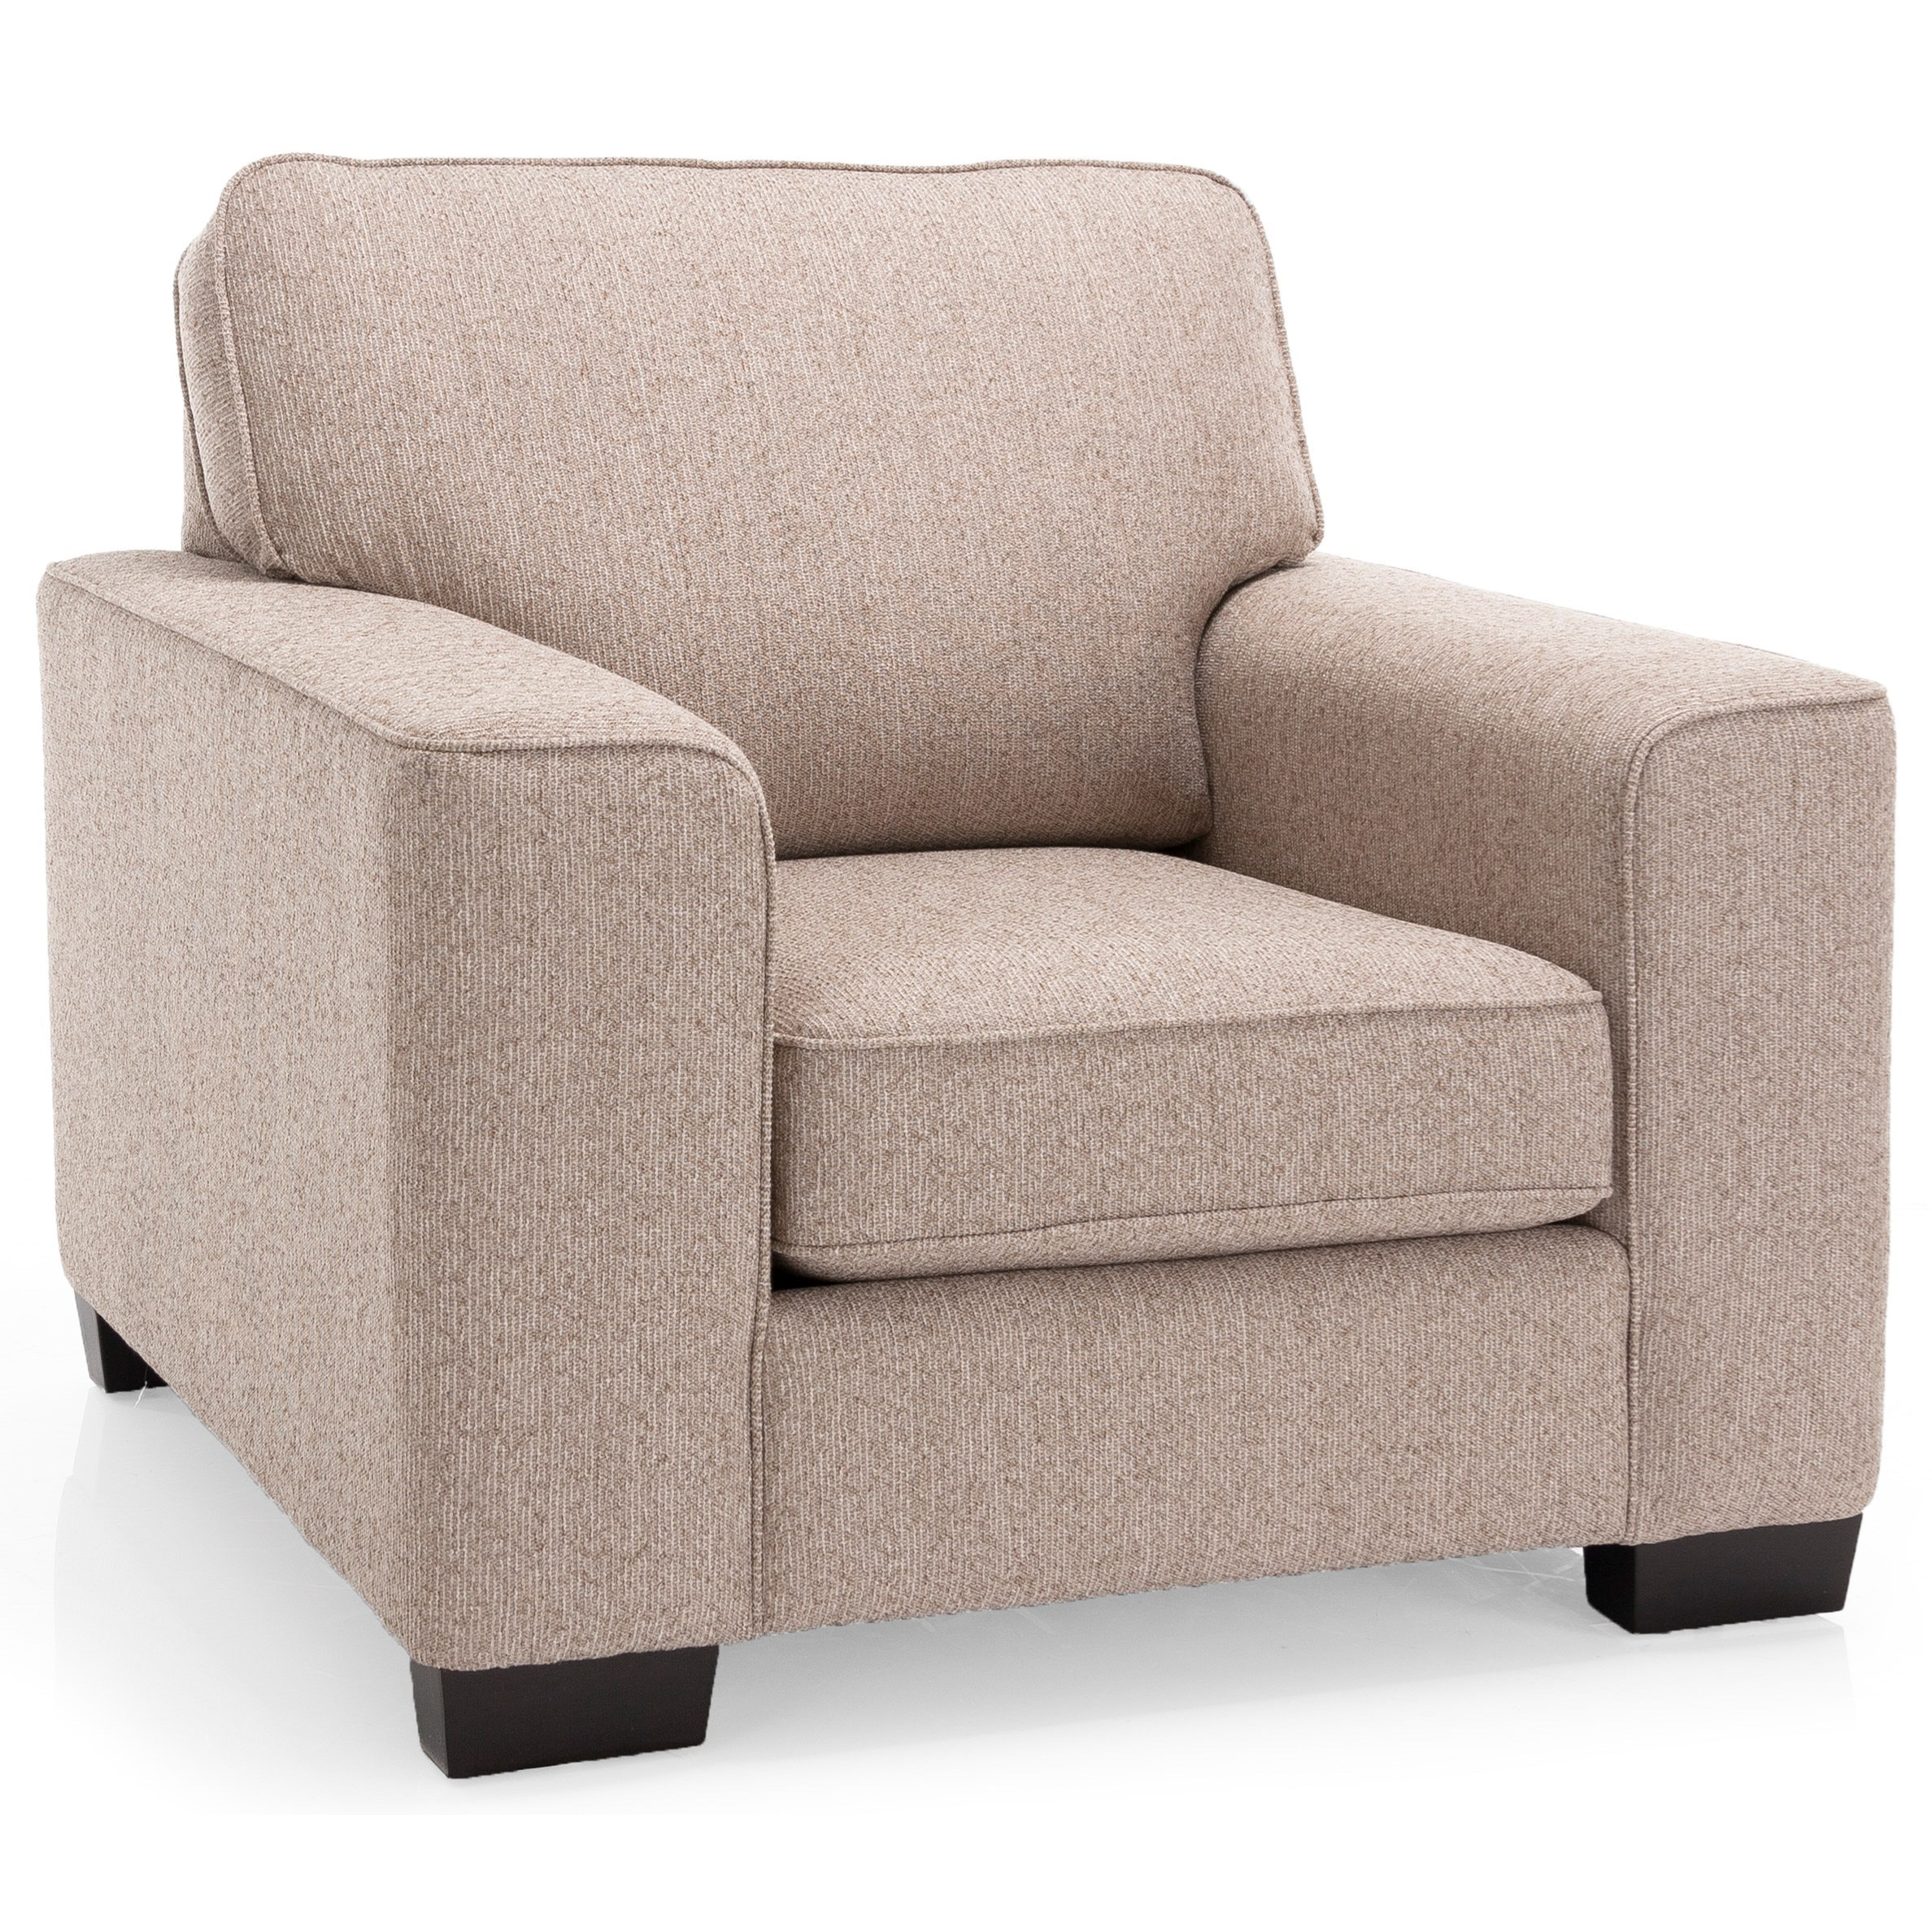 2483 Chair by Decor-Rest at Rooms for Less